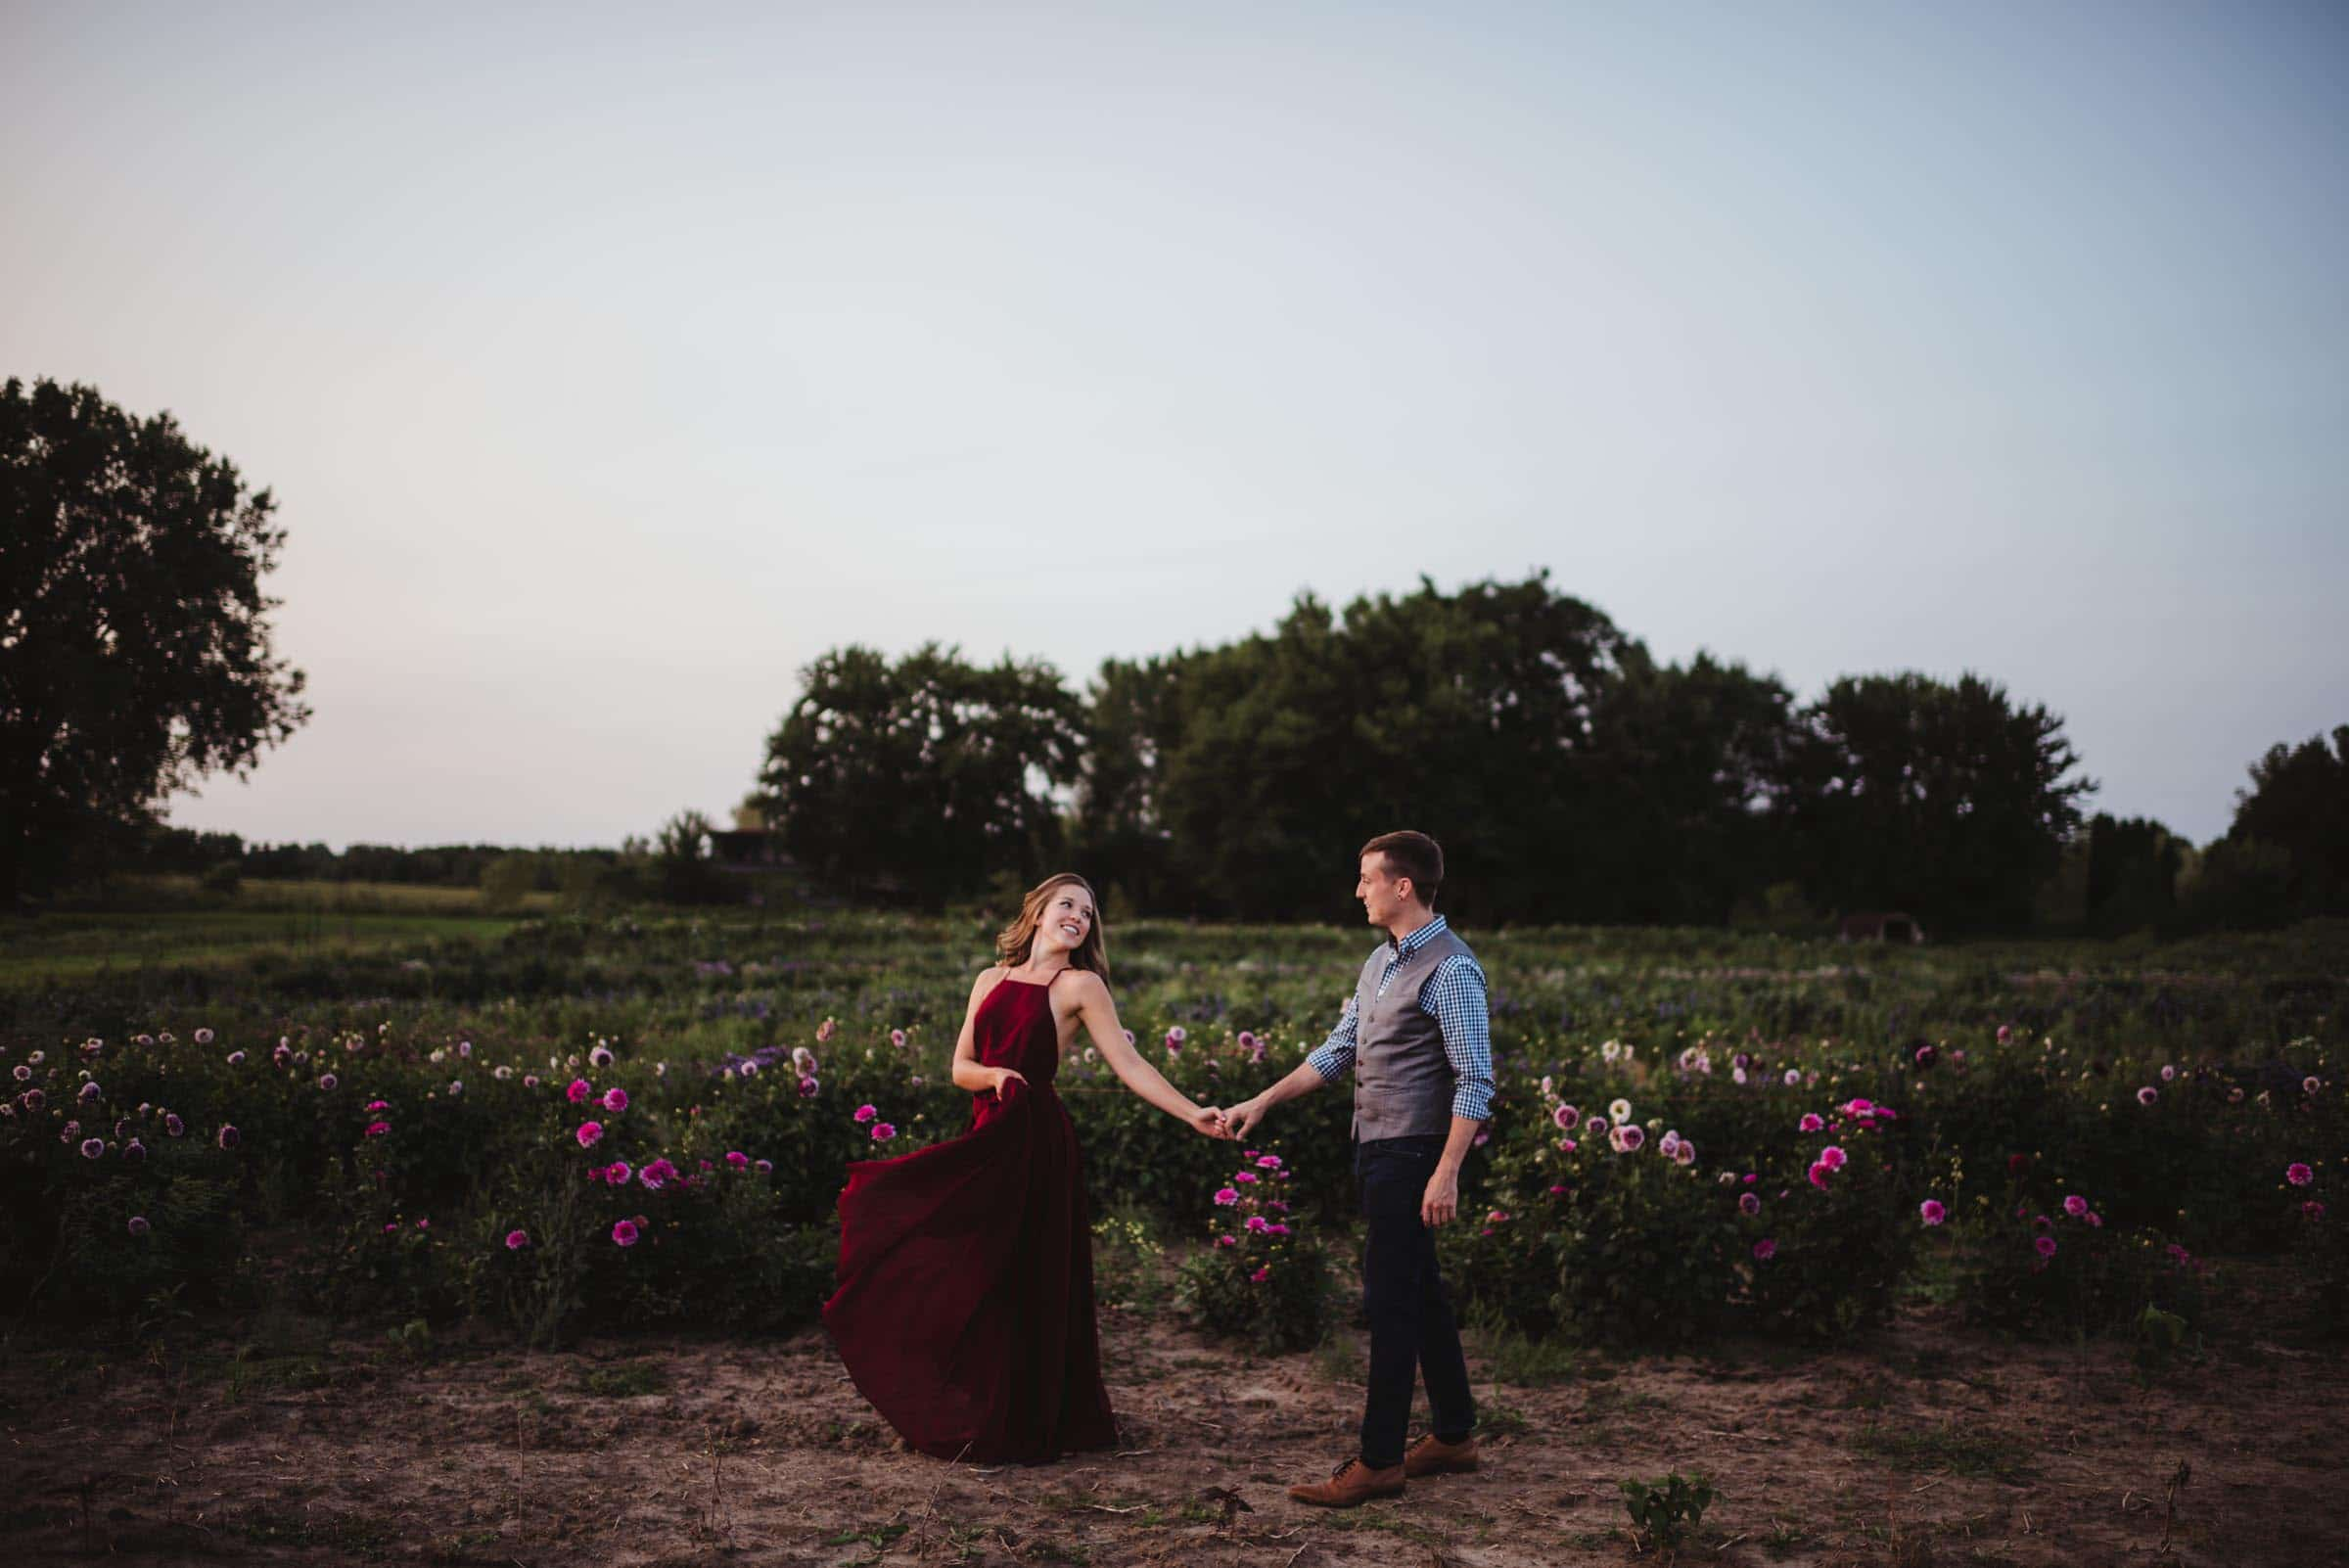 couple walking together in a field of flowers